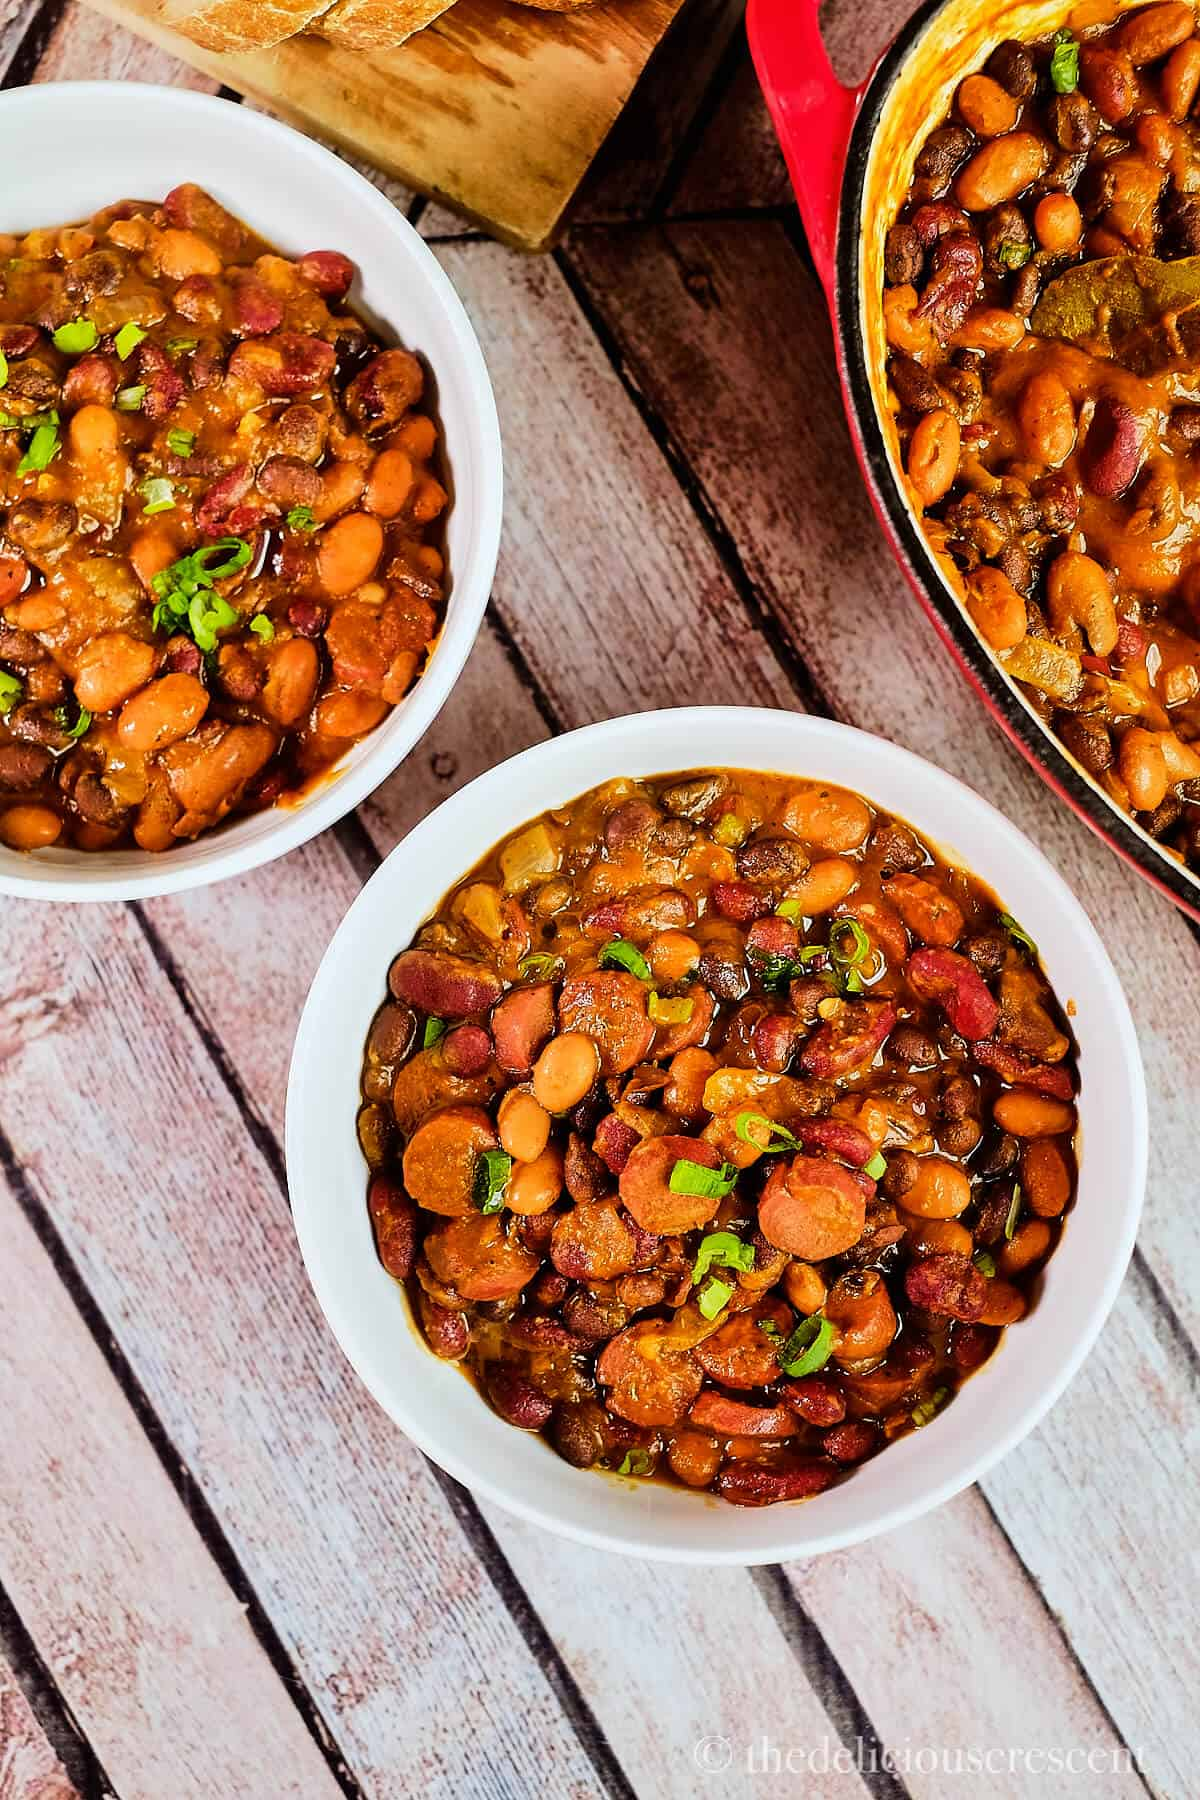 Bowls full of sausage stew with beans.